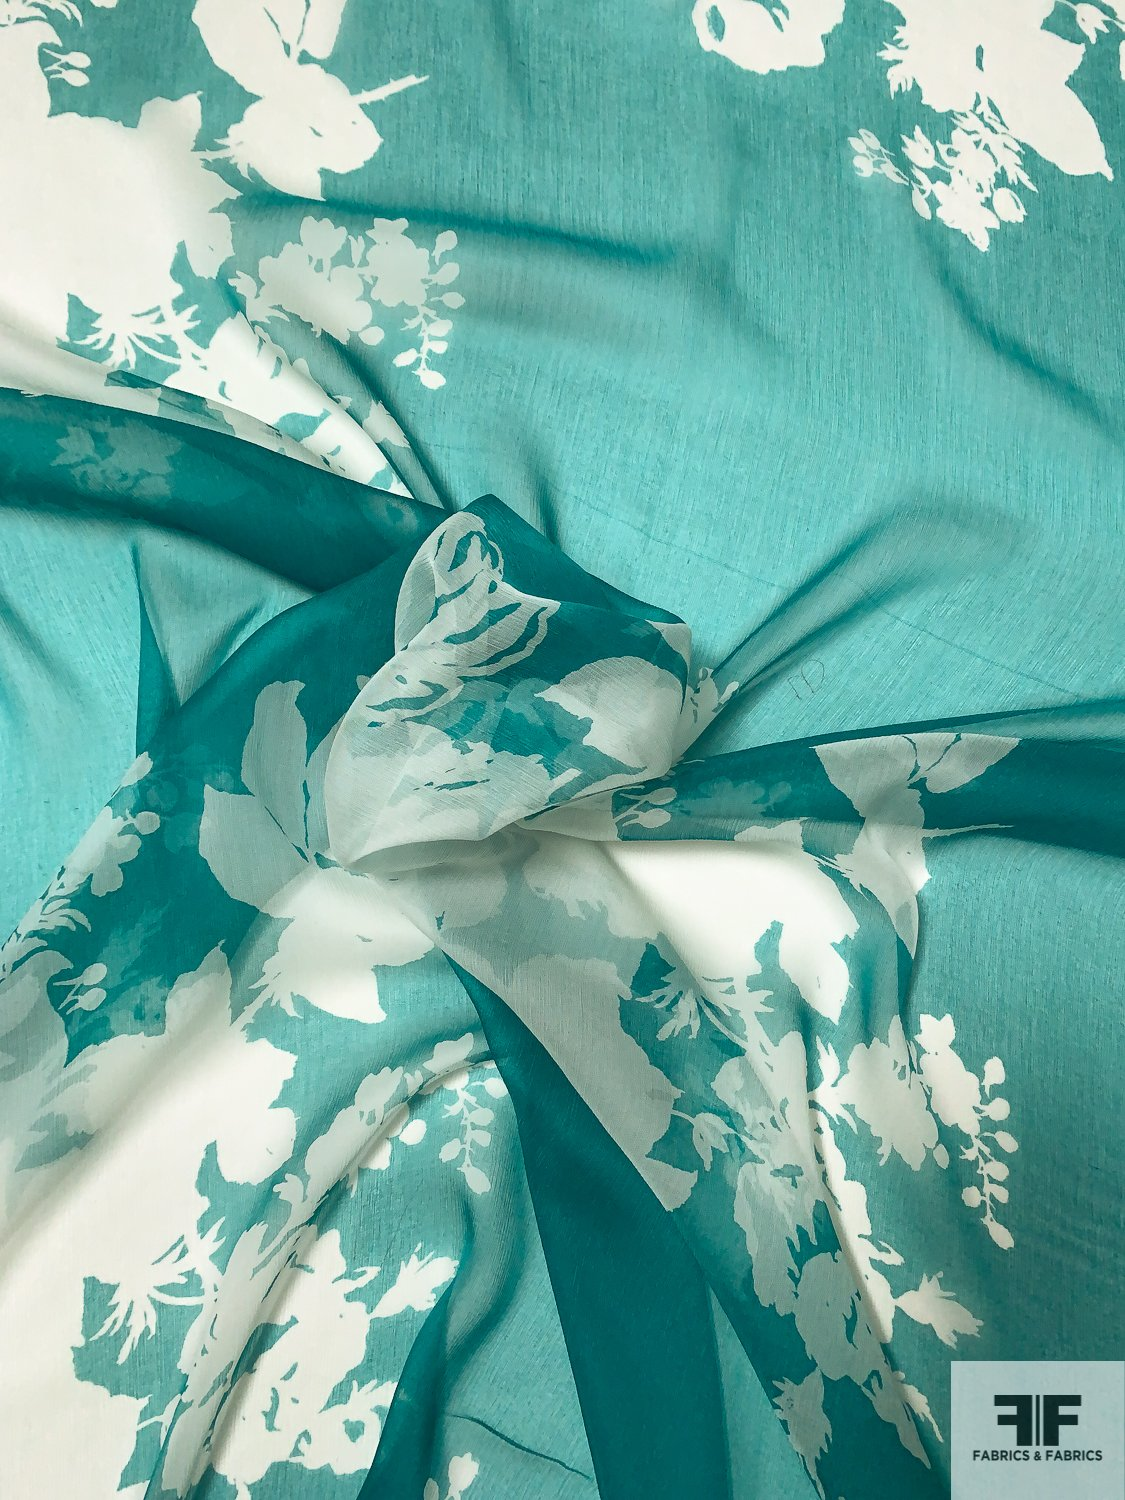 Large-Scale Floral Silhouette Printed Silk Chiffon - Ocean Green / Off-White